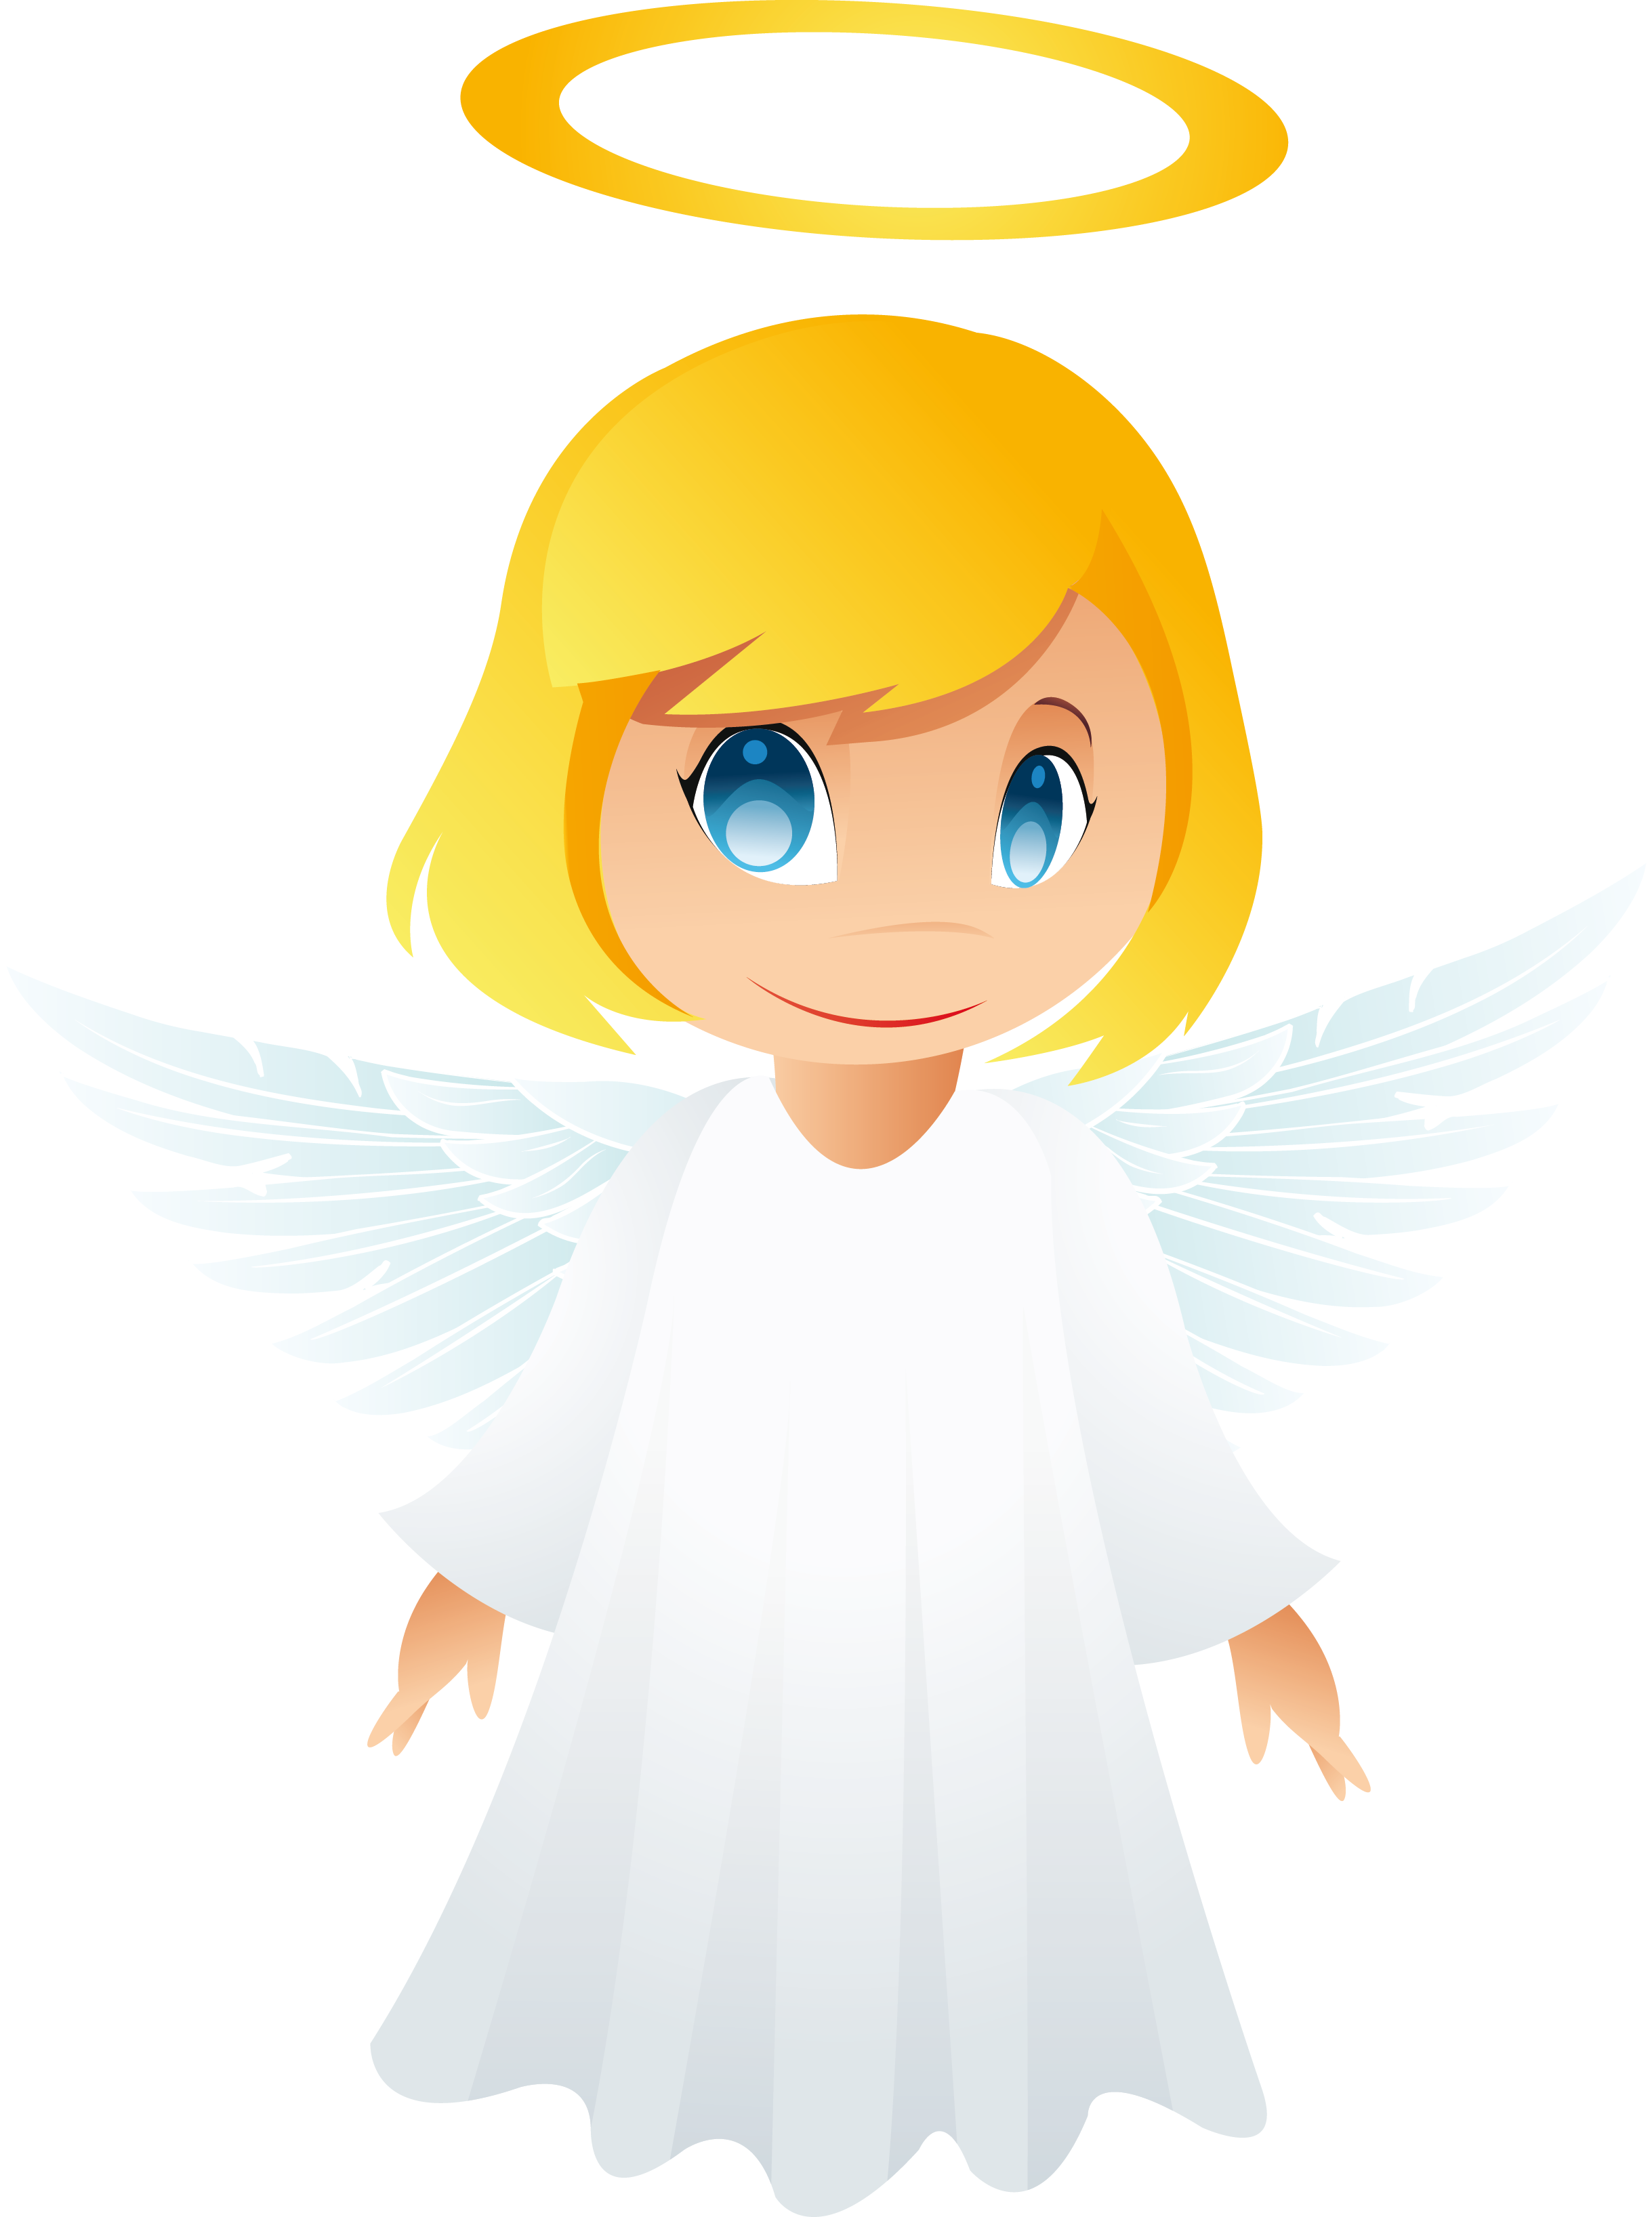 Angel Clipart Free Graphics Of Cherubs A-Angel clipart free graphics of cherubs and angels the cliparts-3